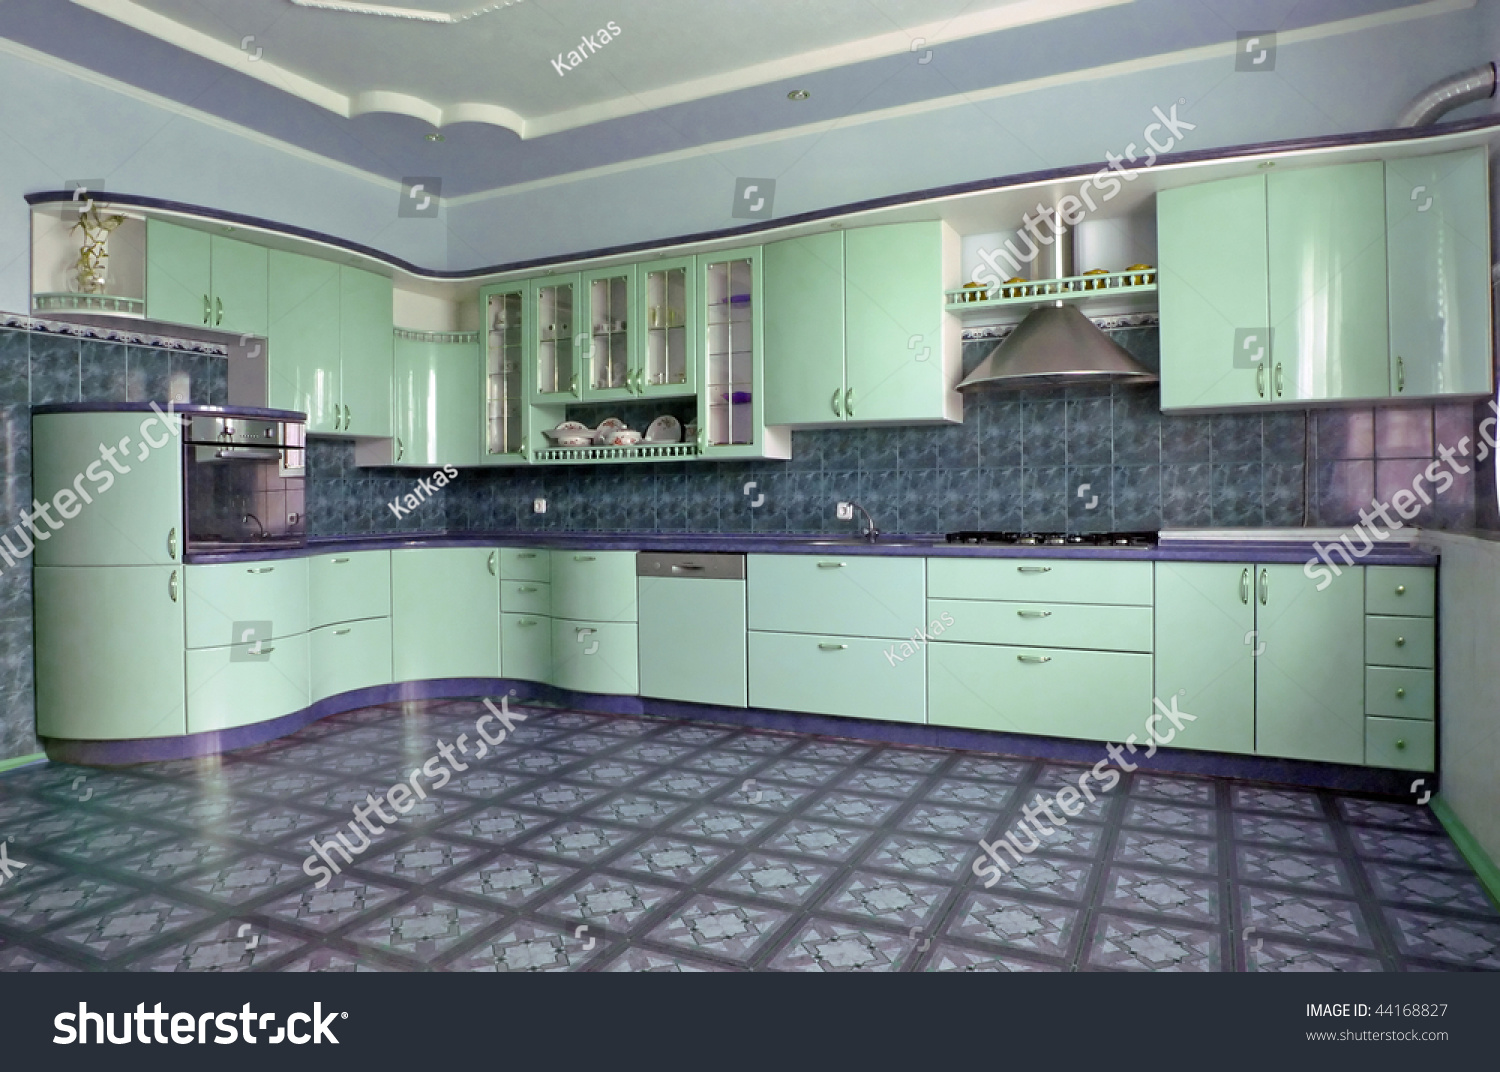 Green Kitchen Stock Photo (Royalty Free) 44168827 - Shutterstock